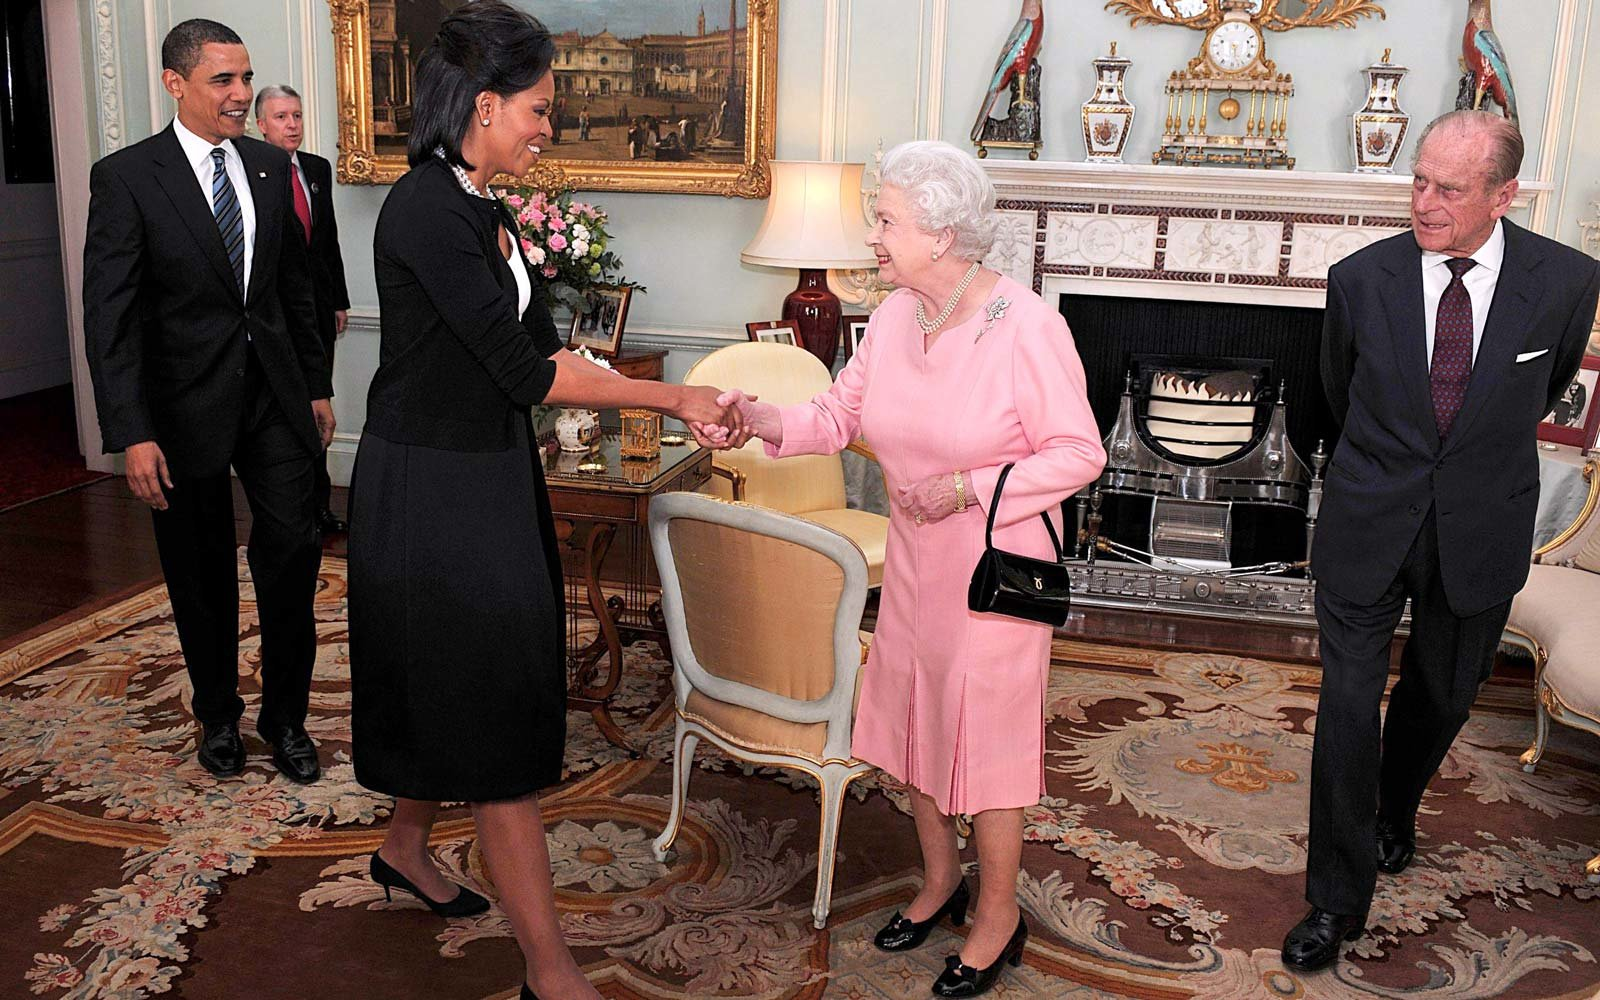 Michelle Obama Bonded With the Queen Over Their Shared Hatred of the Most Relatable Problem